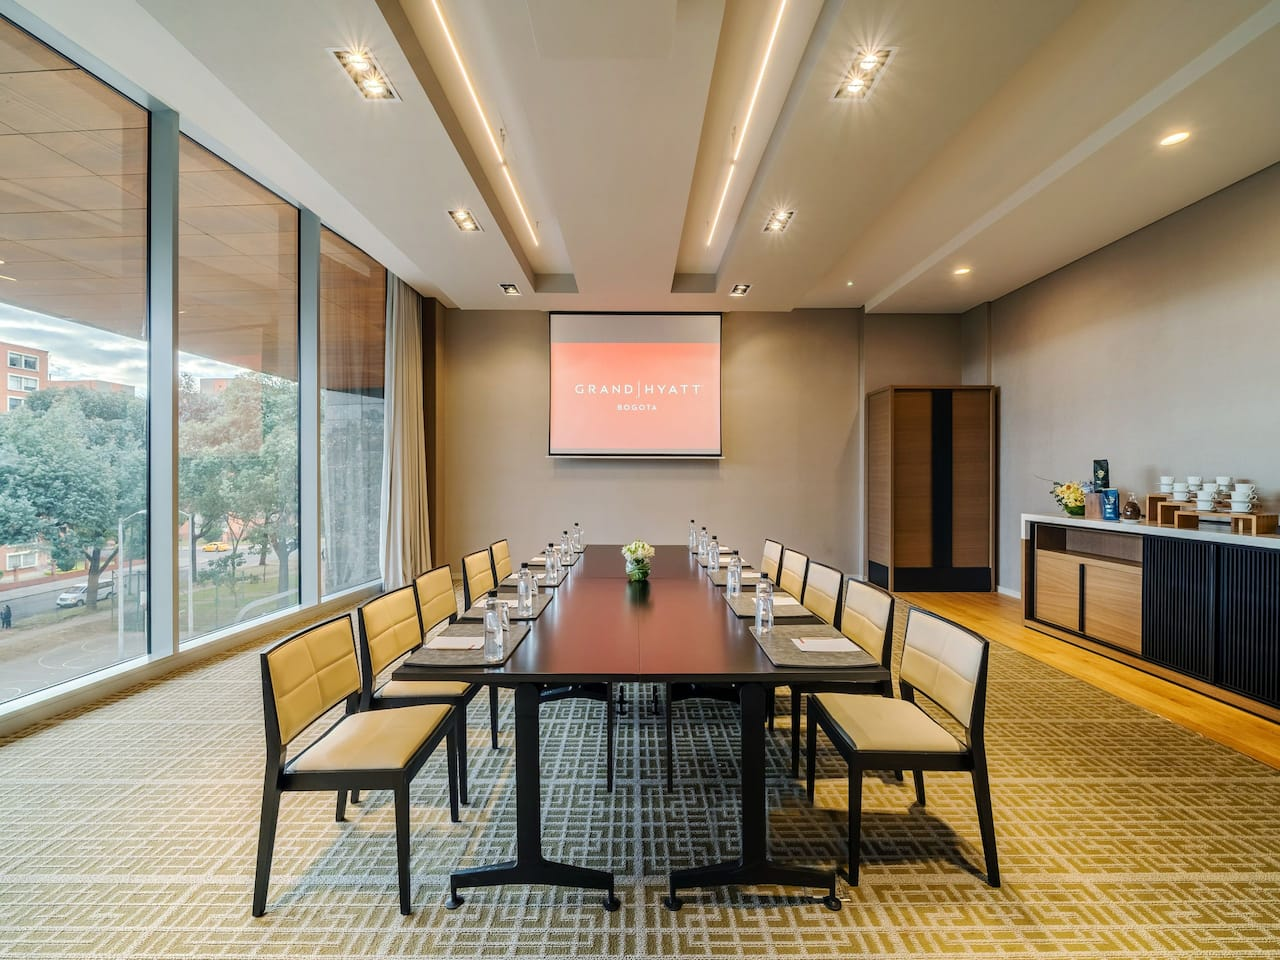 hyatt grand meeting room